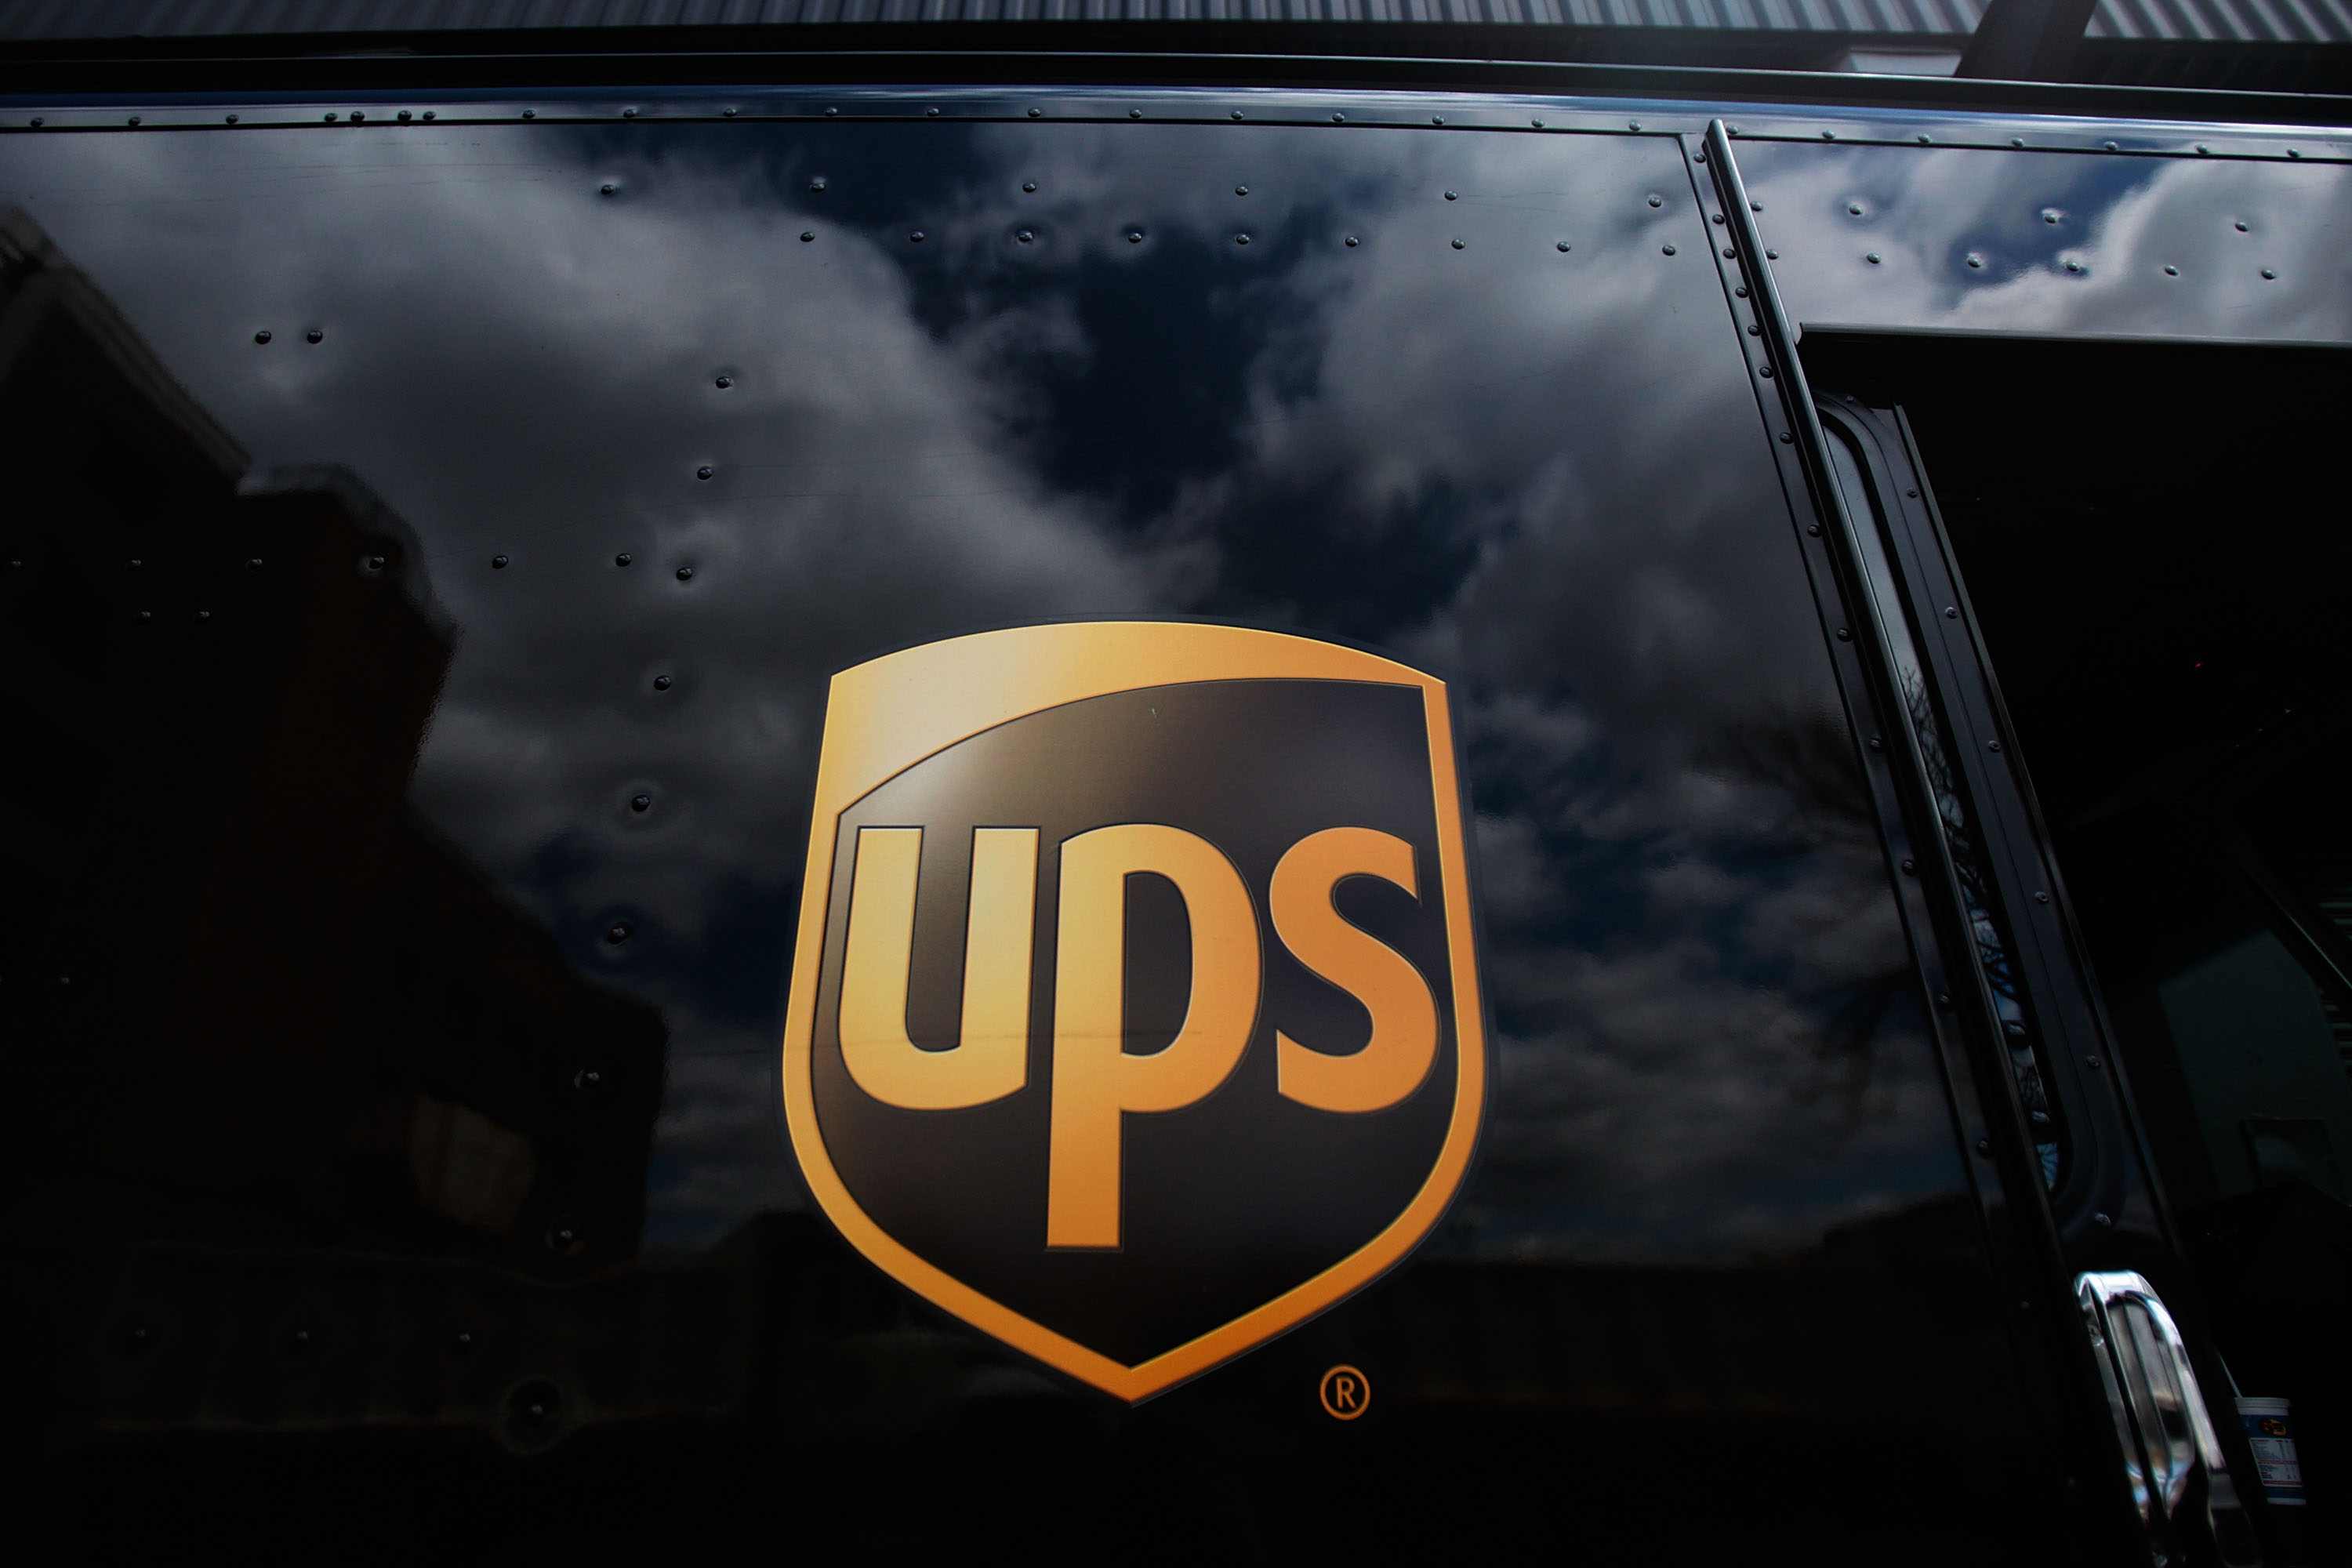 The United Parcel Service logo on the side of a delivery truck on April 23, 2009 in New York City.